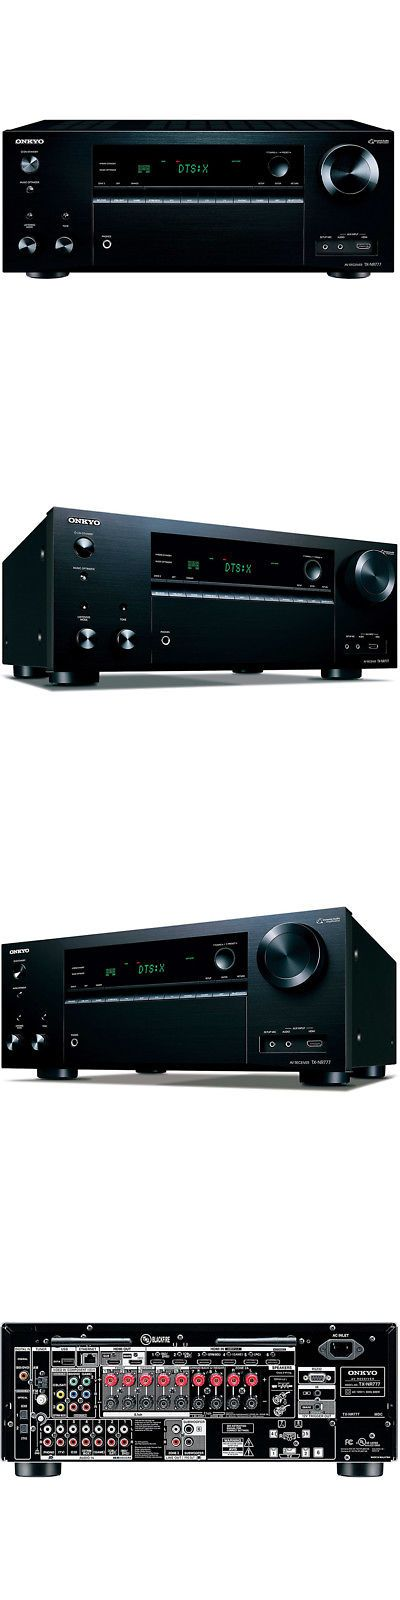 Home Theater Receivers: Onkyo Tx-Nr777 7.2 Ch Network Av Receiver W 7 Hdmi Inputs And Wifi In Black -> BUY IT NOW ONLY: $597.36 on eBay!